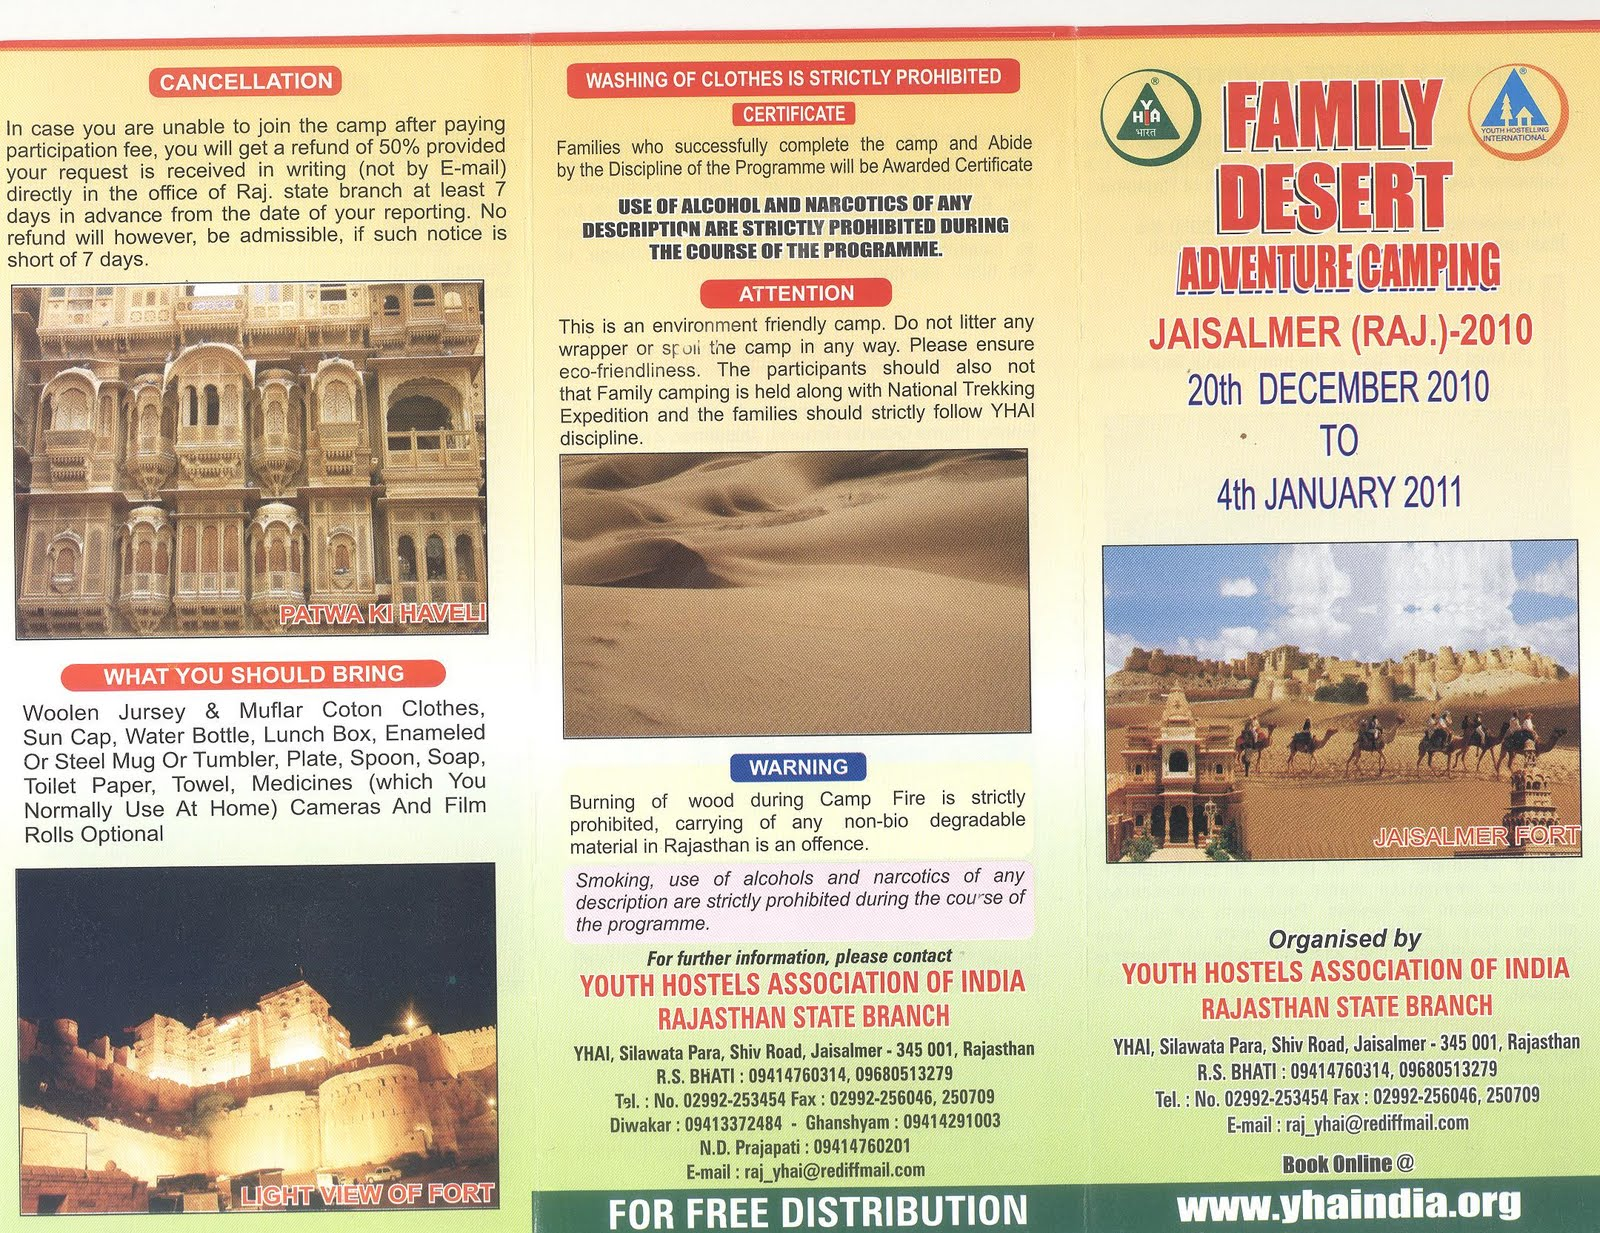 family camping at jaisalmer rajasthan